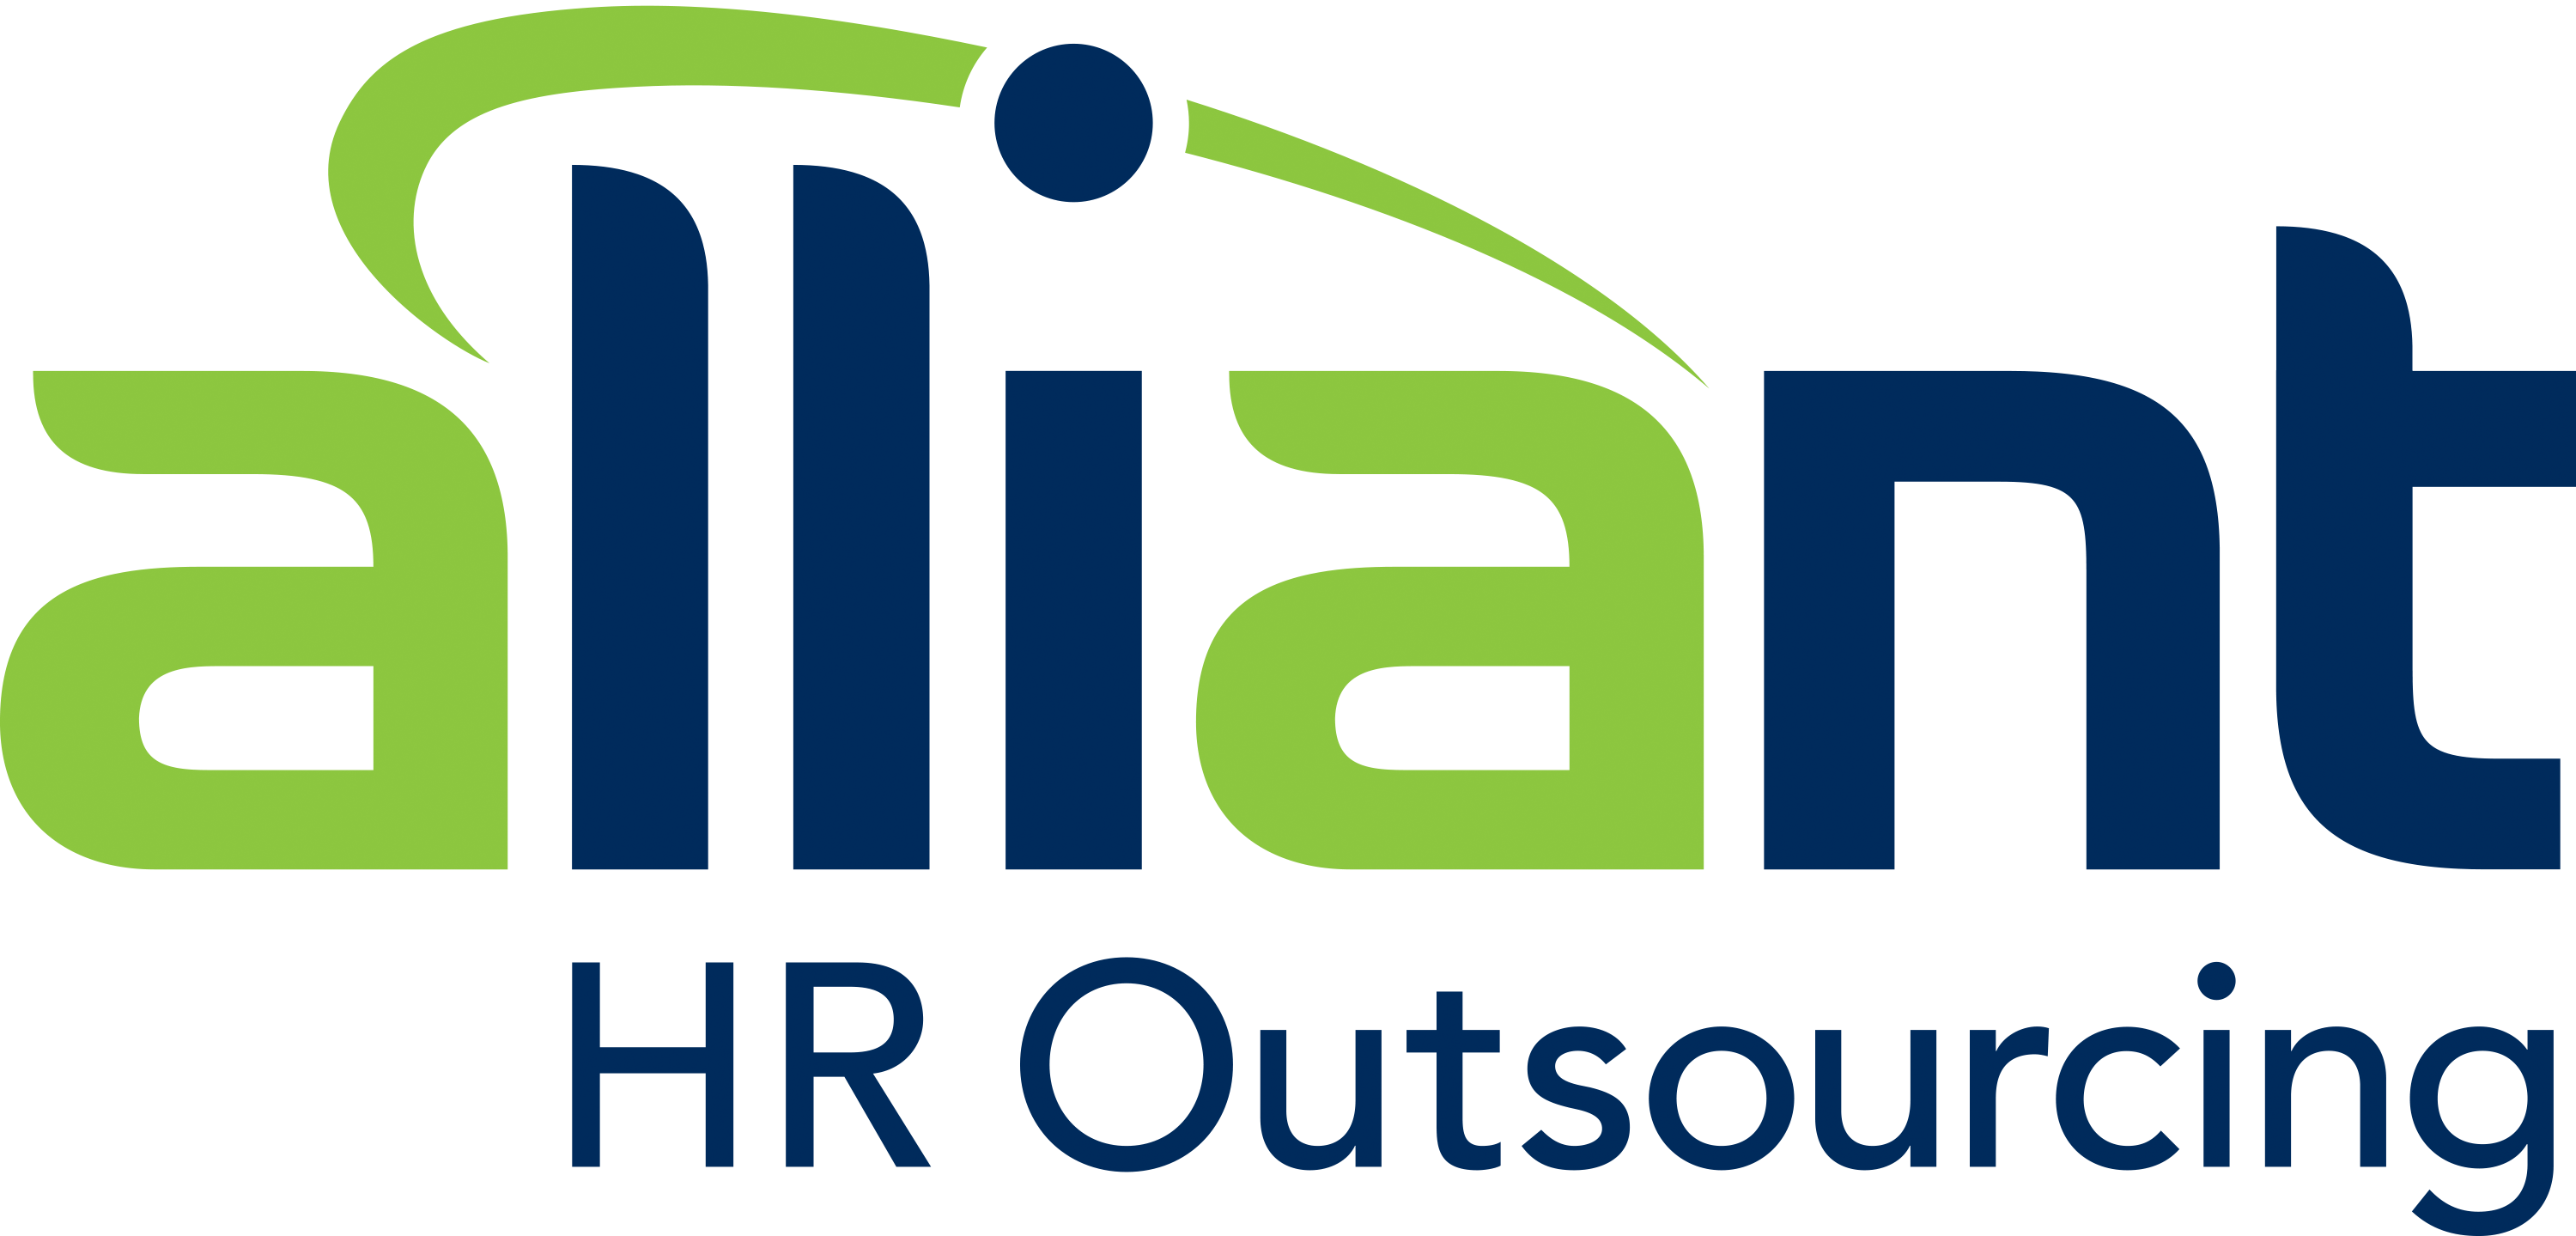 Alliant logo. If you click here it will take you back to the home page.